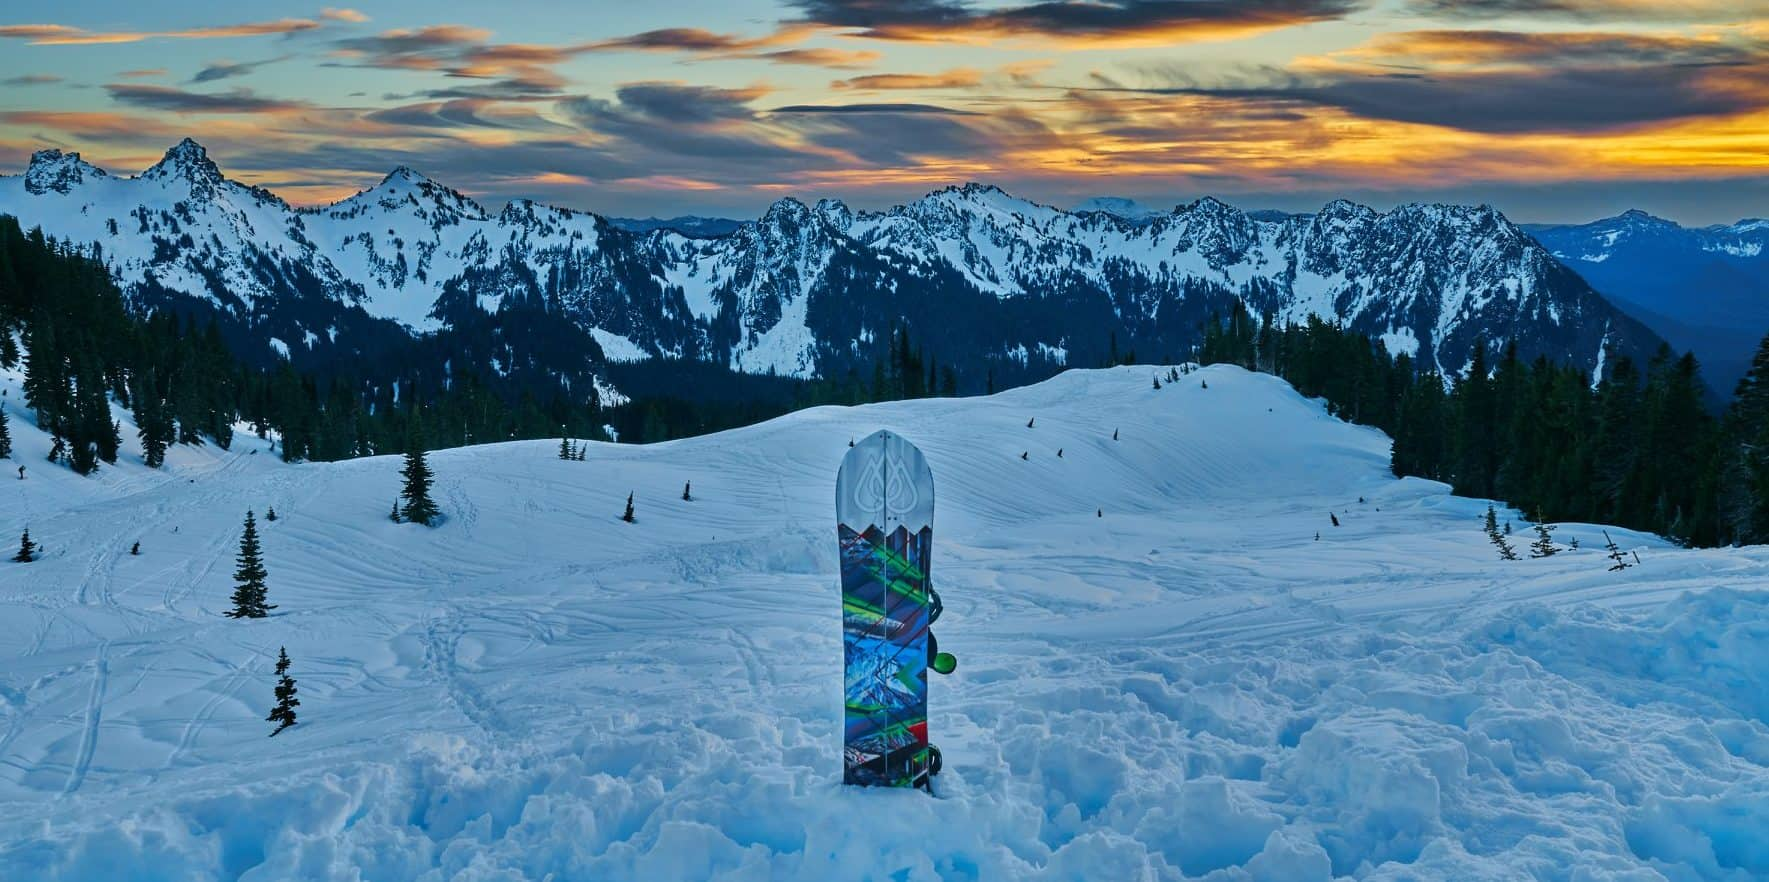 Backcountry sunset photo with snowboard in the snow by Rainier Mountain Sportz